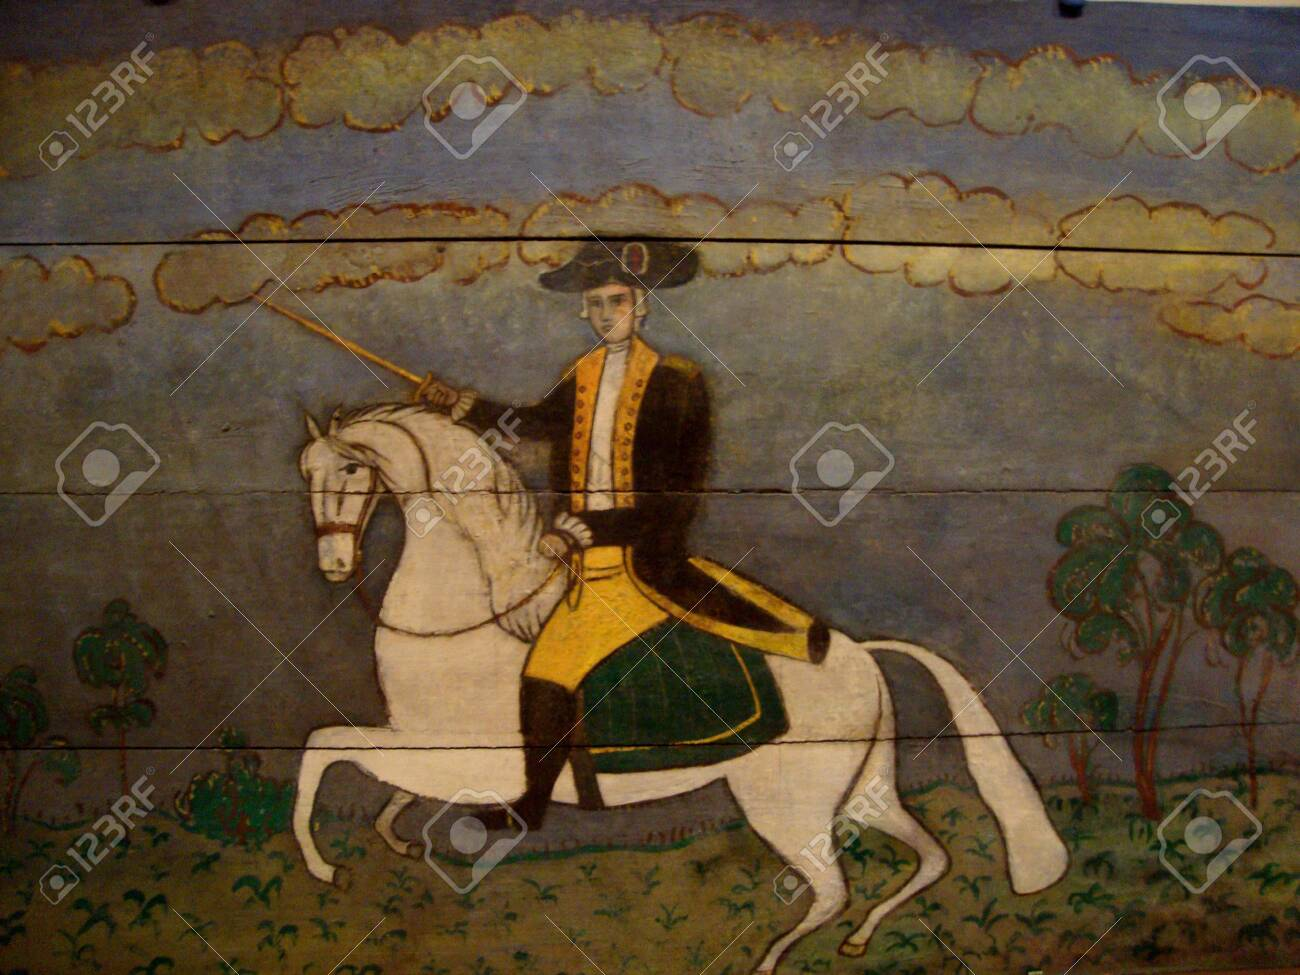 Illustration Of General George Washington Riding A White Horse Stock Photo Picture And Royalty Free Image Image 121601680